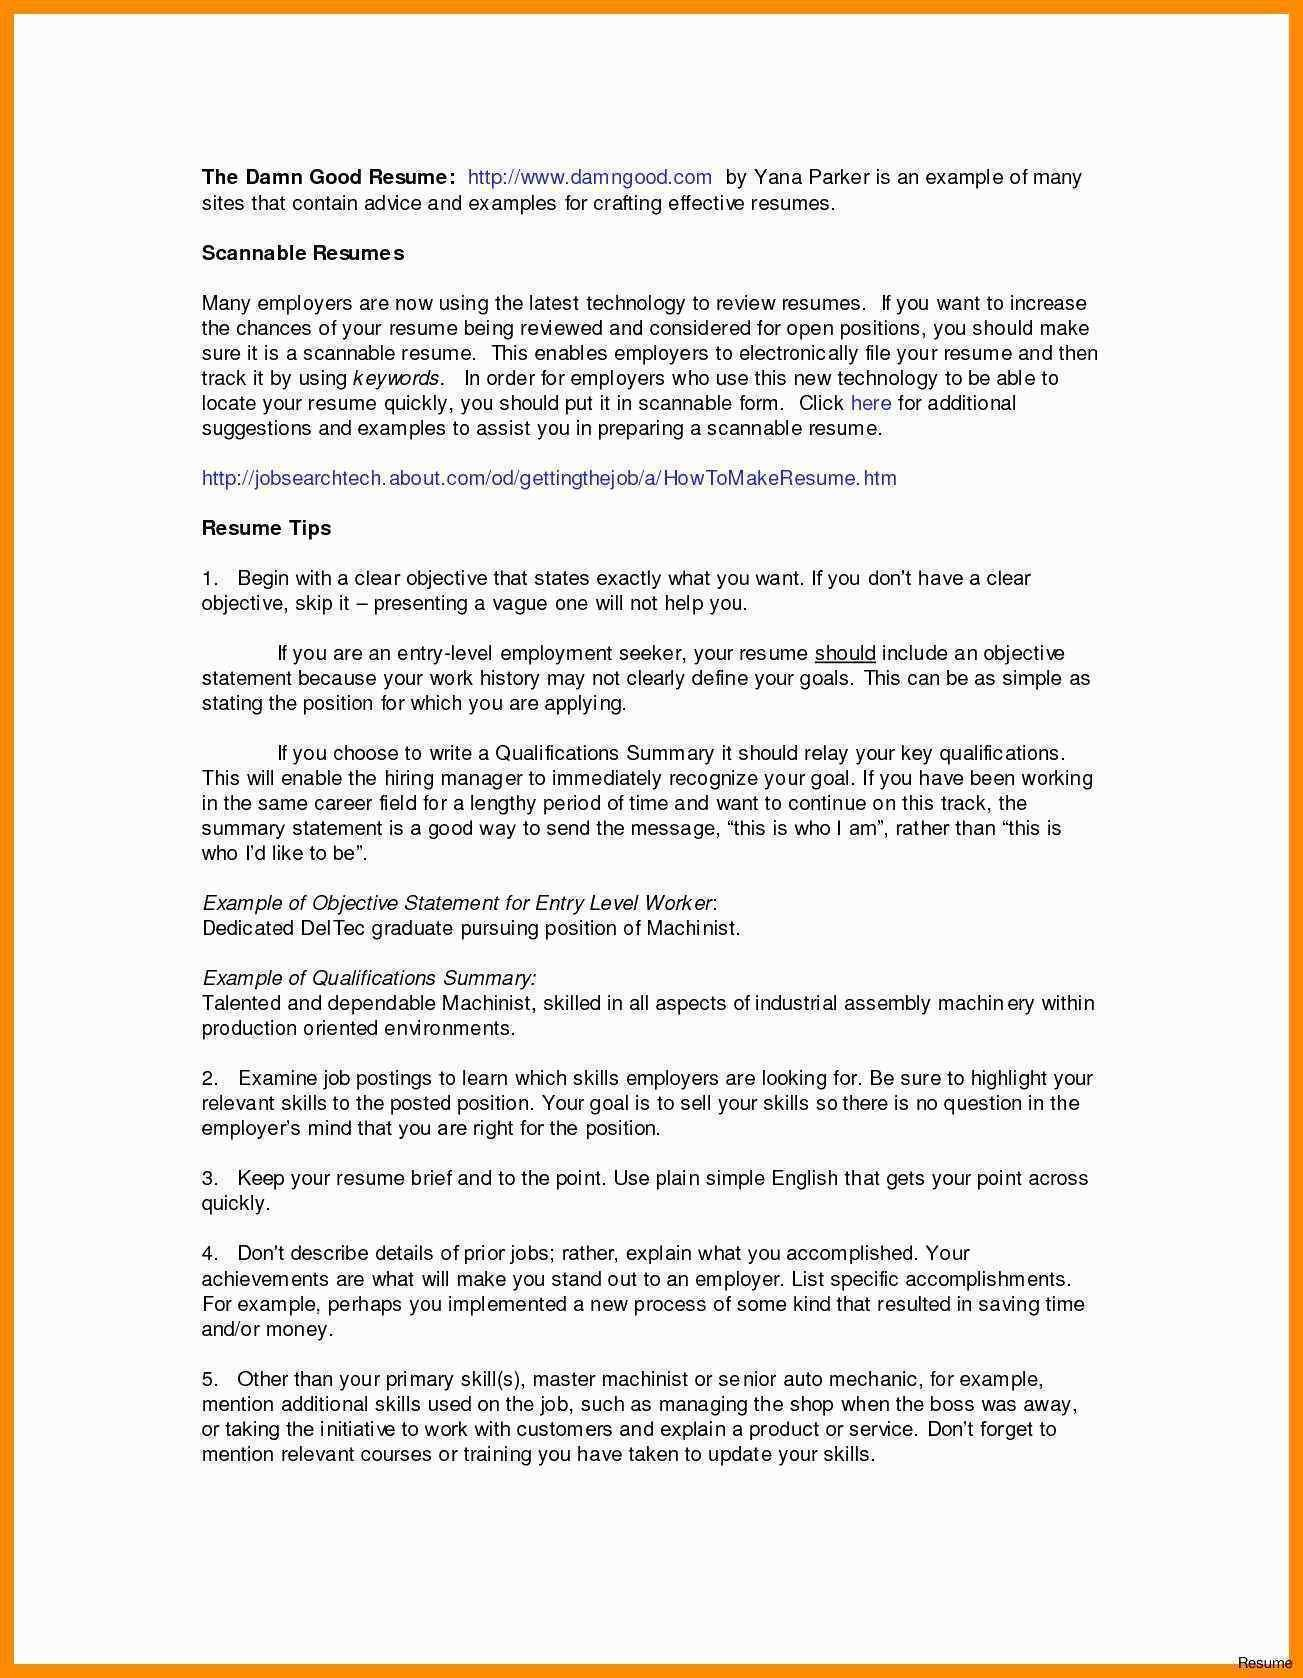 mergers and inquisitions resume template example-Mergers And Inquisitions Resume Template Save Mergers And Inquisitions Resume Template Best Mergers And 13-t